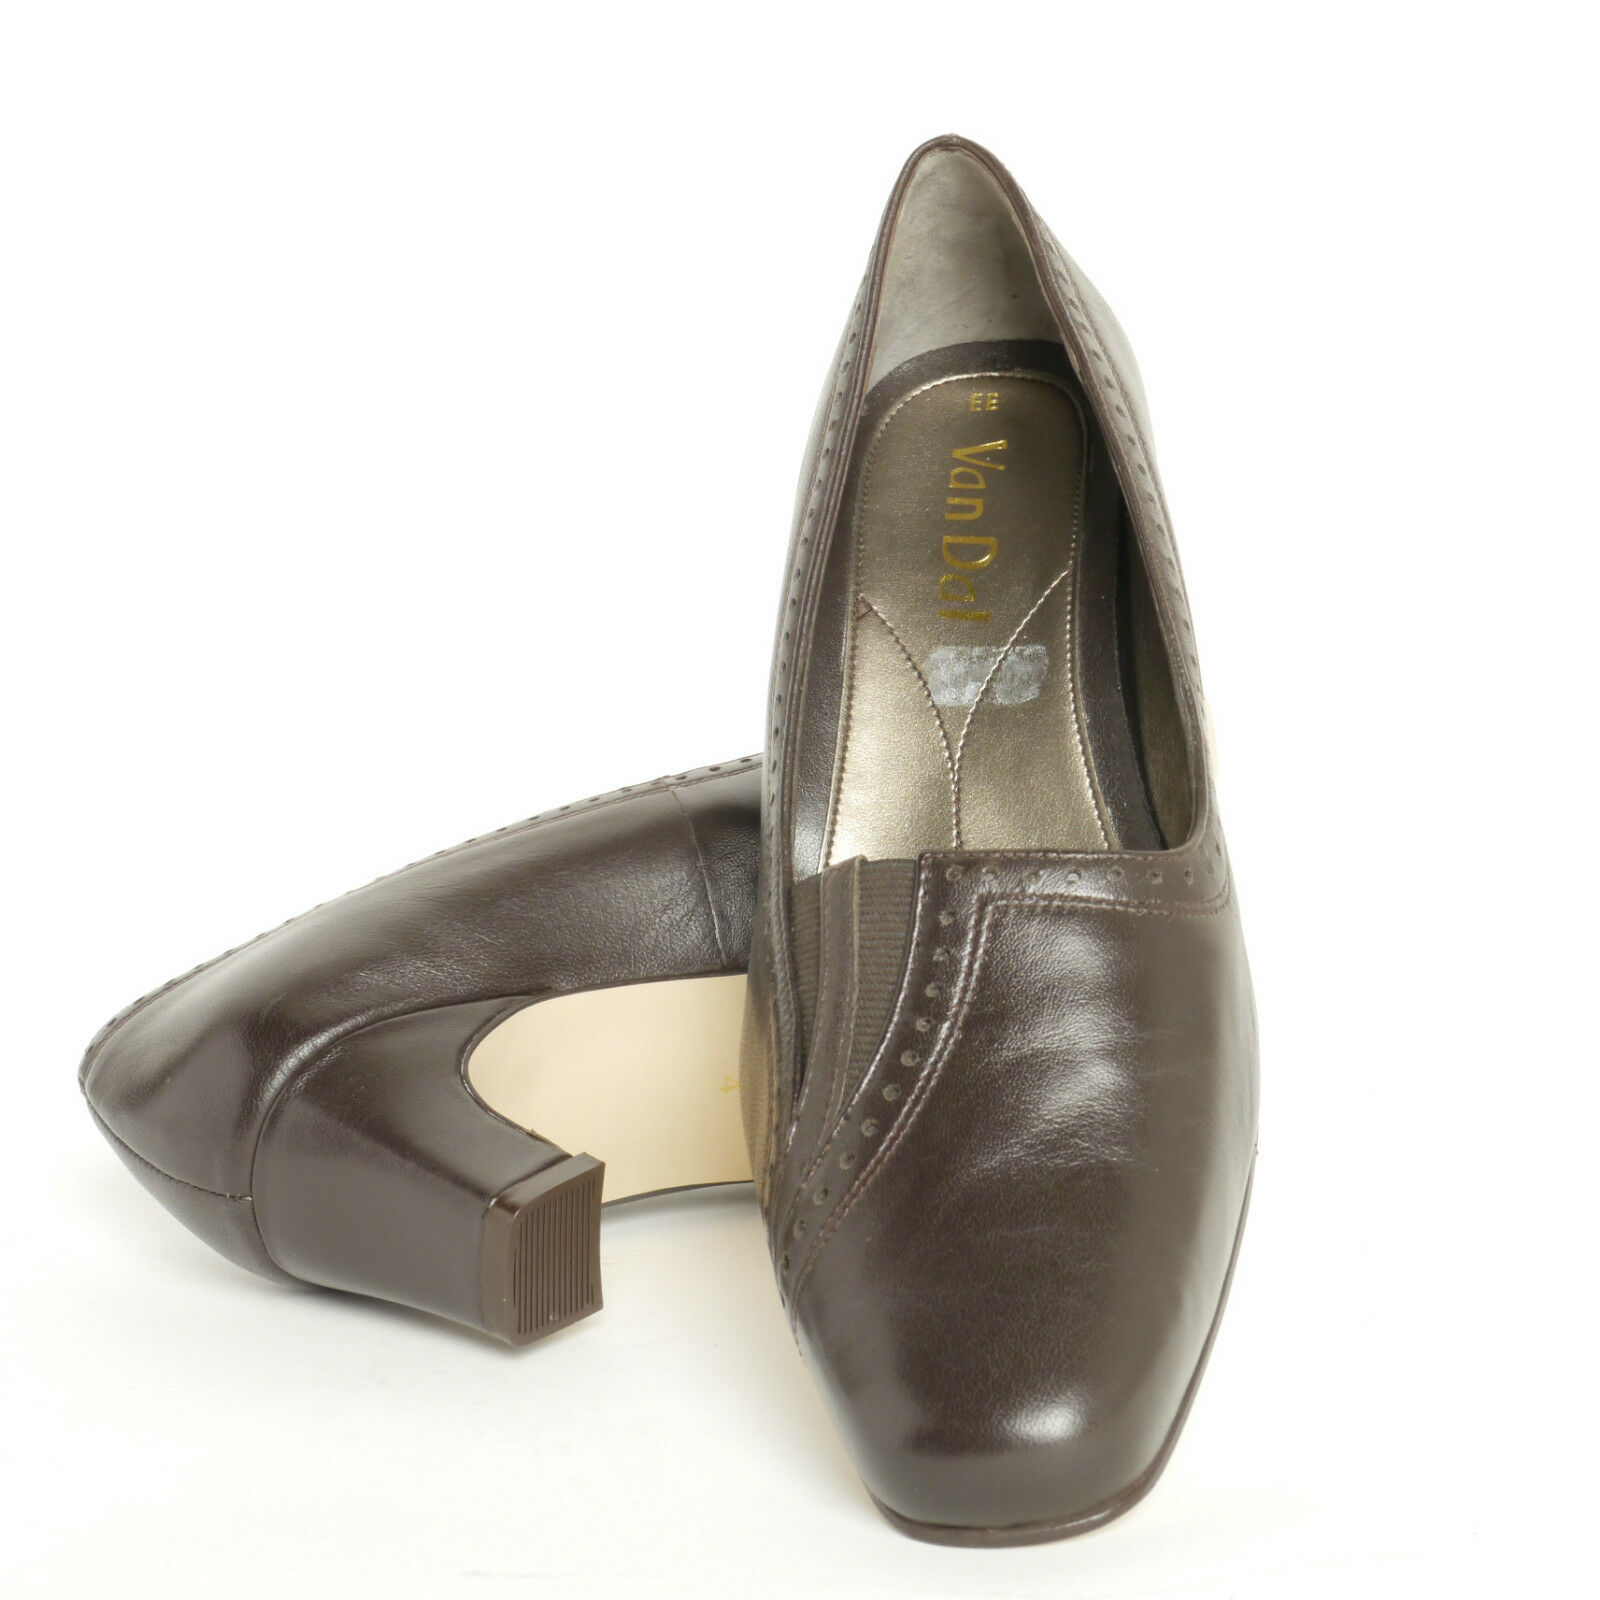 VAN DAL LADIES HEEL COURT SHOES WINONA IN BROWN LEATHER EE FITTING